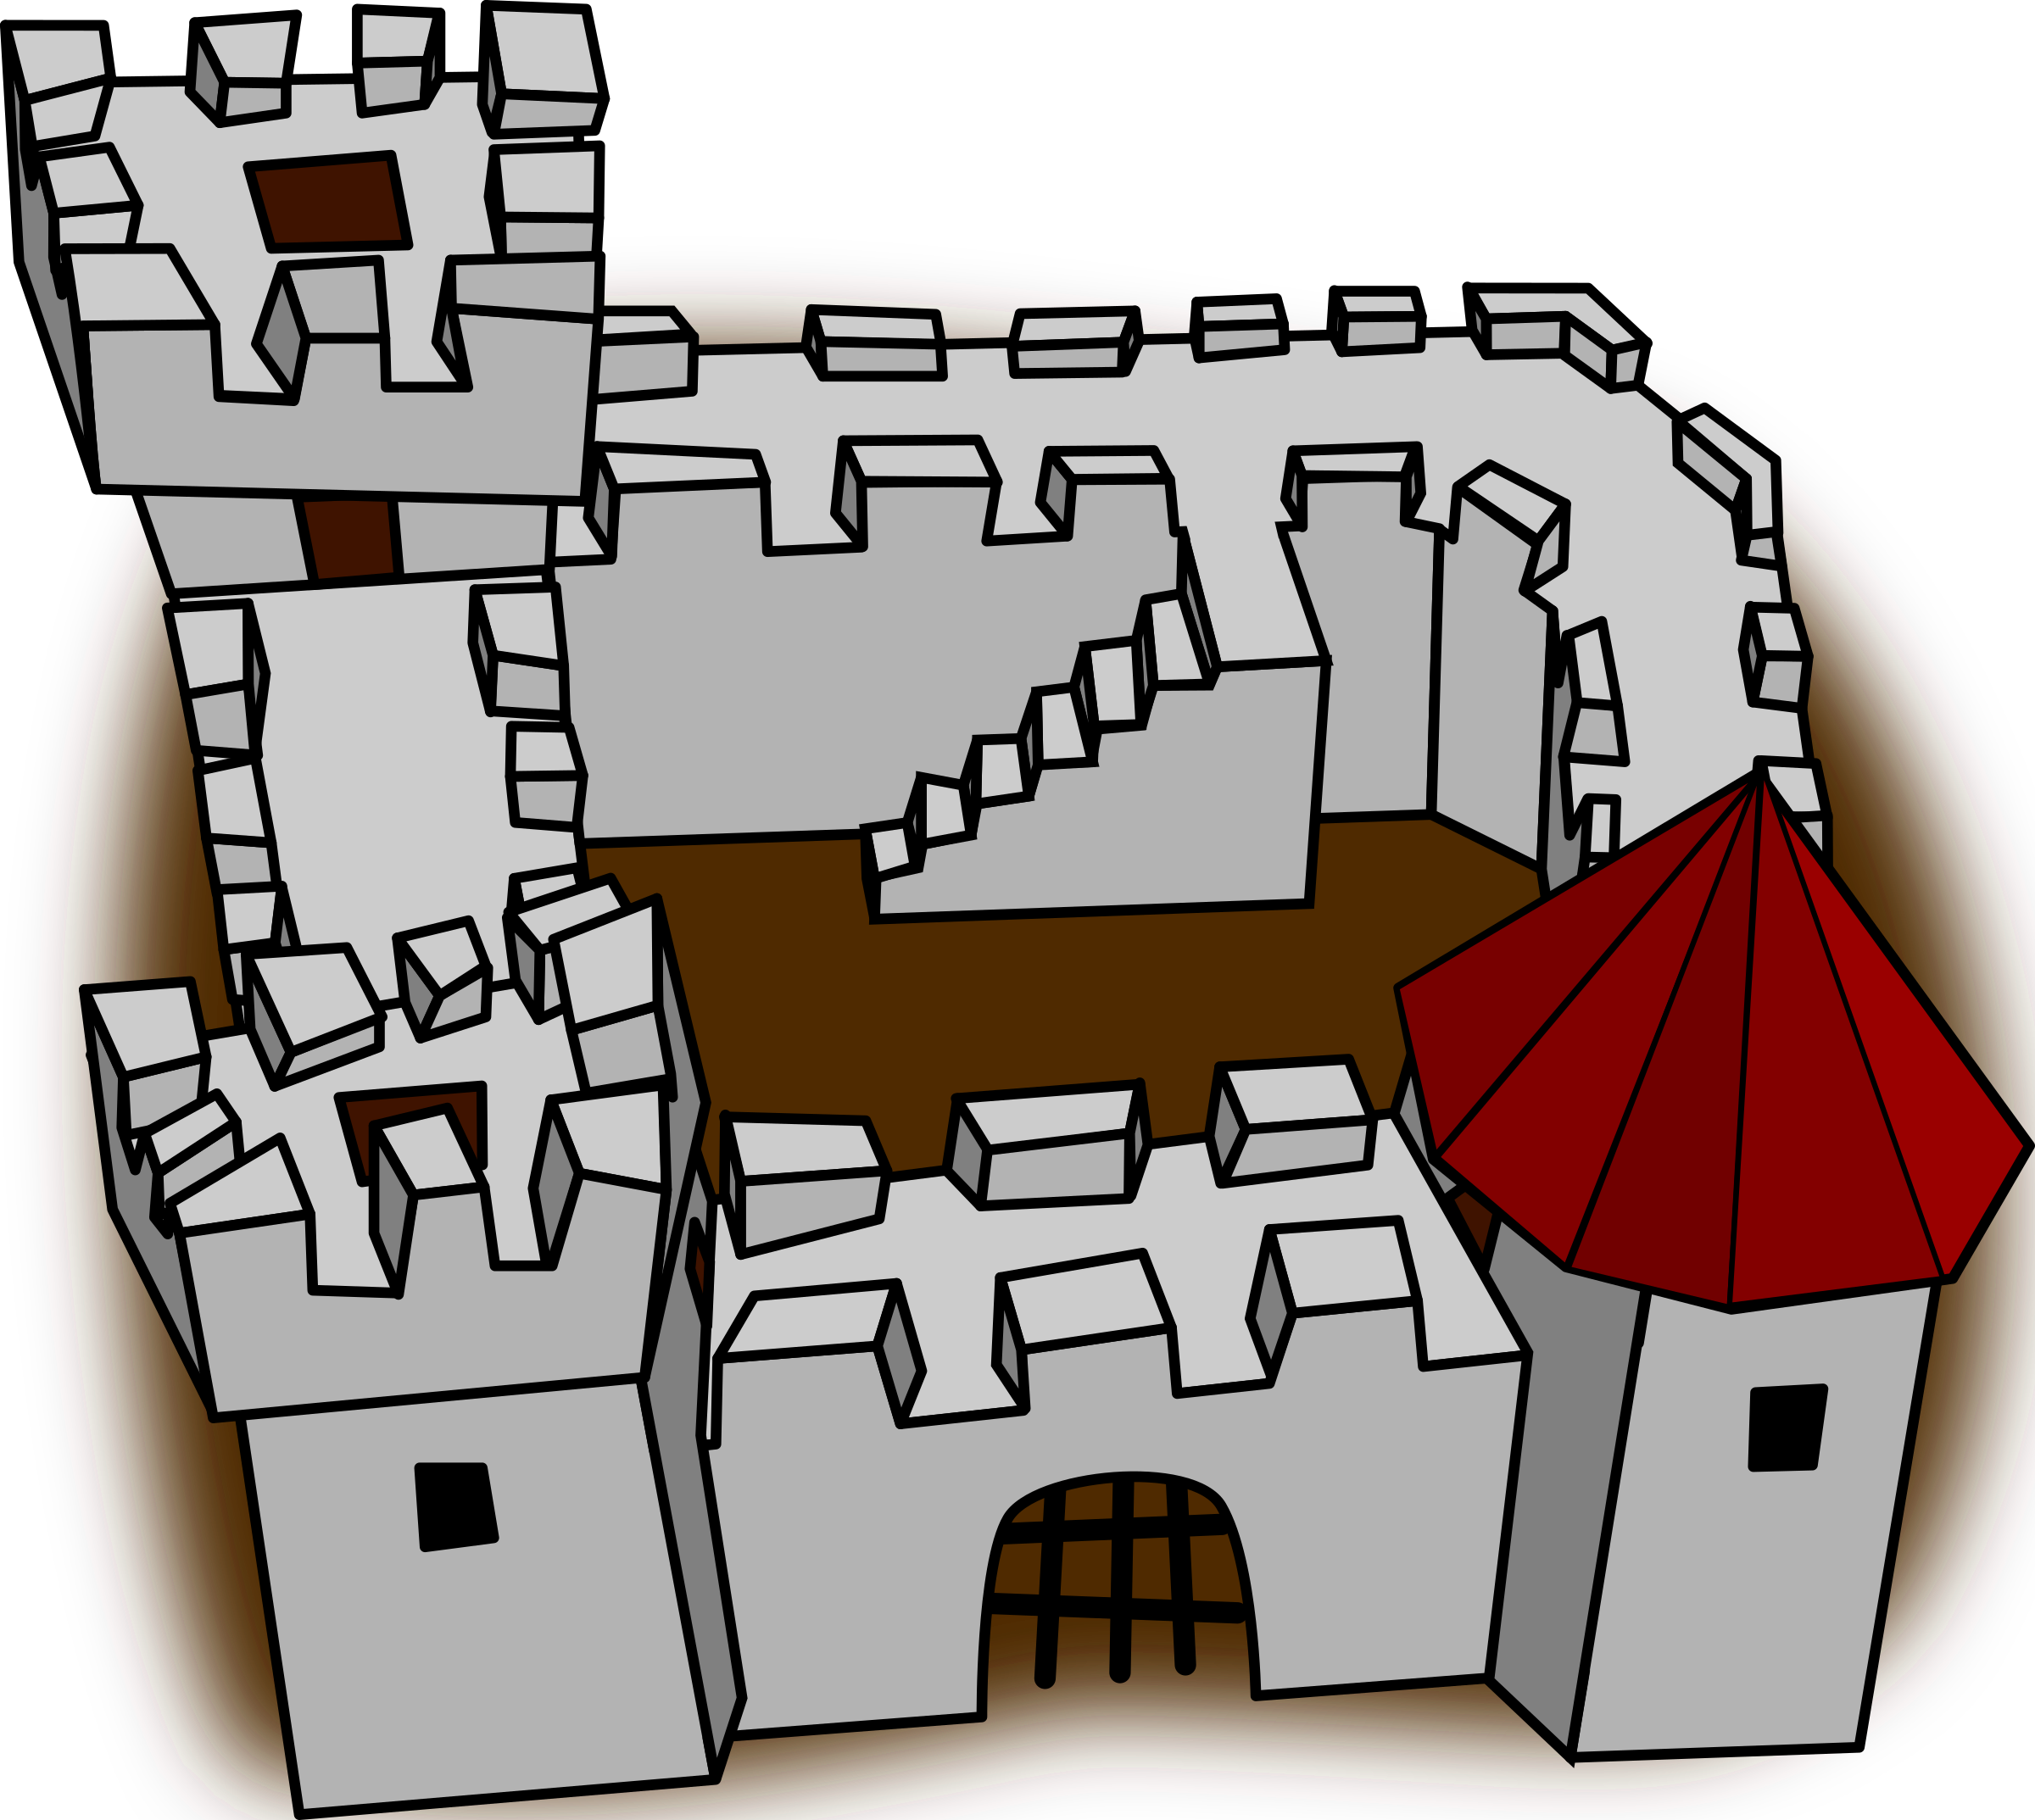 Clipart cartoon comic fortress. Fort drawing banner free download